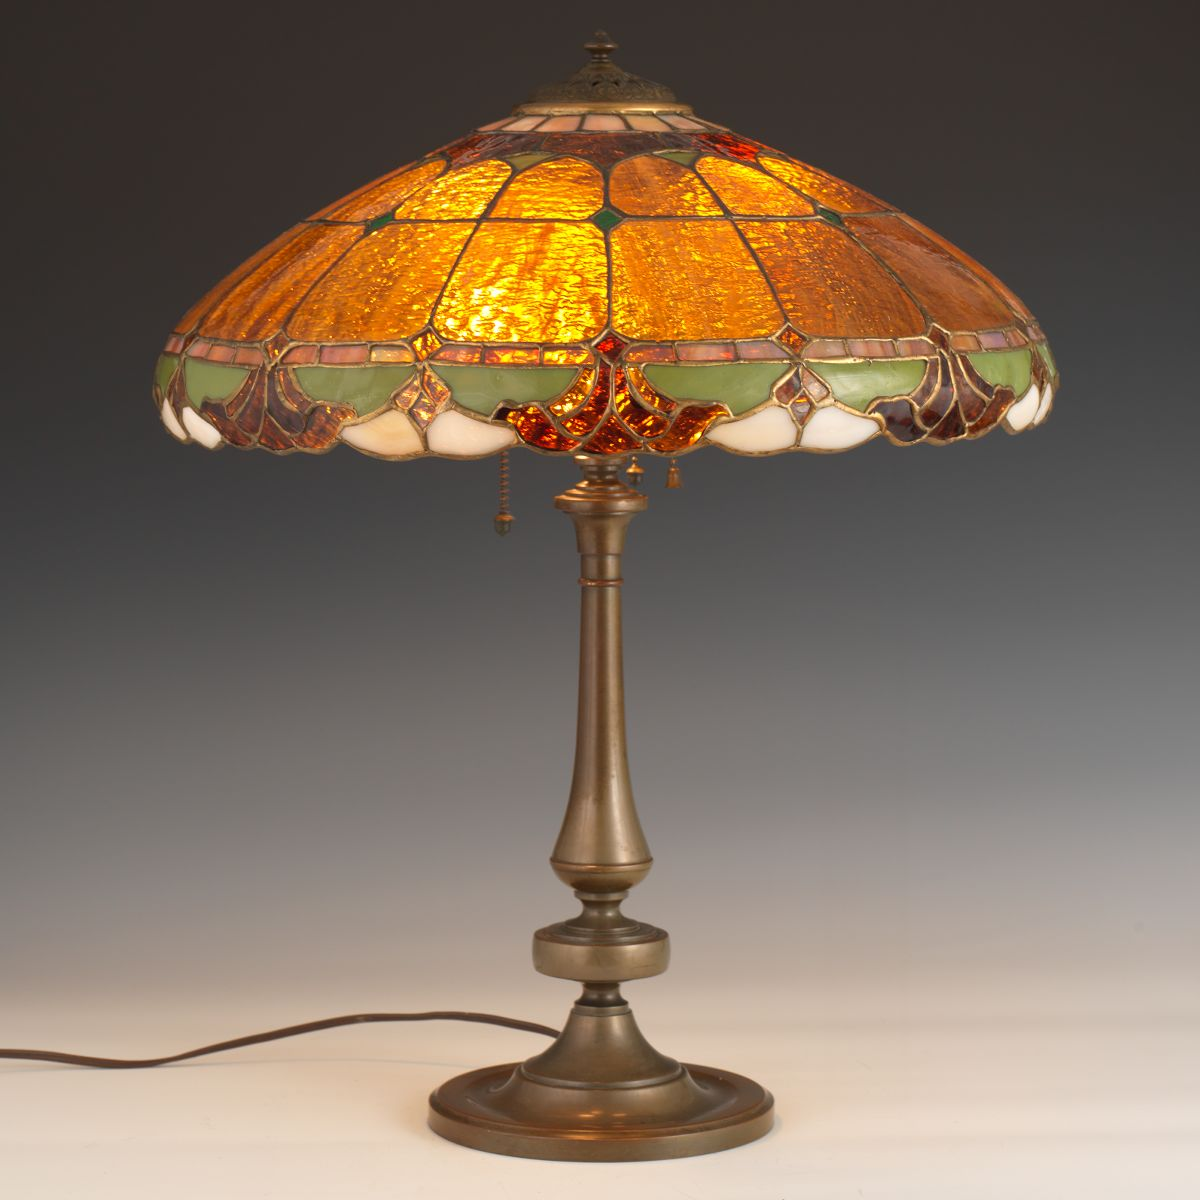 Wilkinson fleur de lis leaded glass shade lamp 090414 sold 1380 wilkinson fleur de lis leaded glass shade lamp mozeypictures Image collections